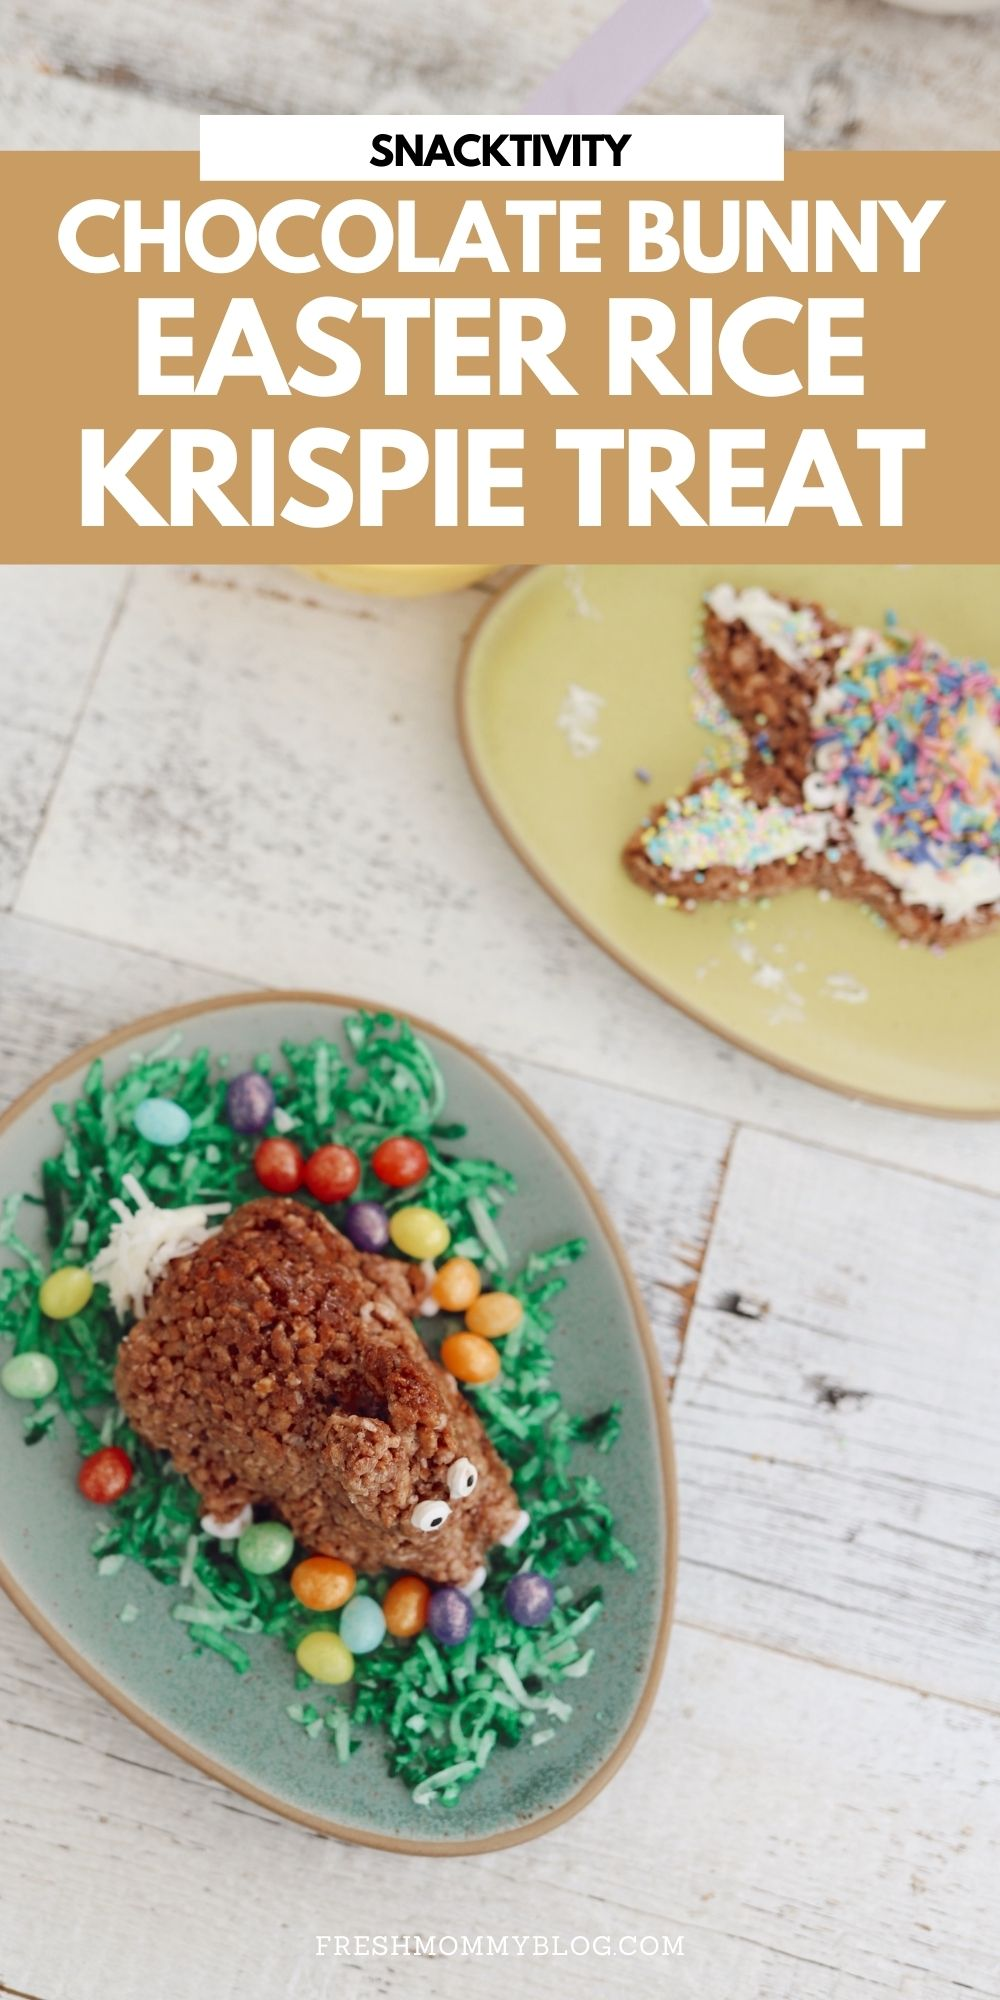 Simple Chocolate Easter Bunny Rice Krispies treats from top lifestyle blogger Tabitha Blue of Fresh Mommy Blog | Chocolate Rice Krispies Treats by popular Florida lifestyle blog, Fresh Mommy Blog: Pinterest image of Easter Bunny shaped chocolate Rice Krispies treats.